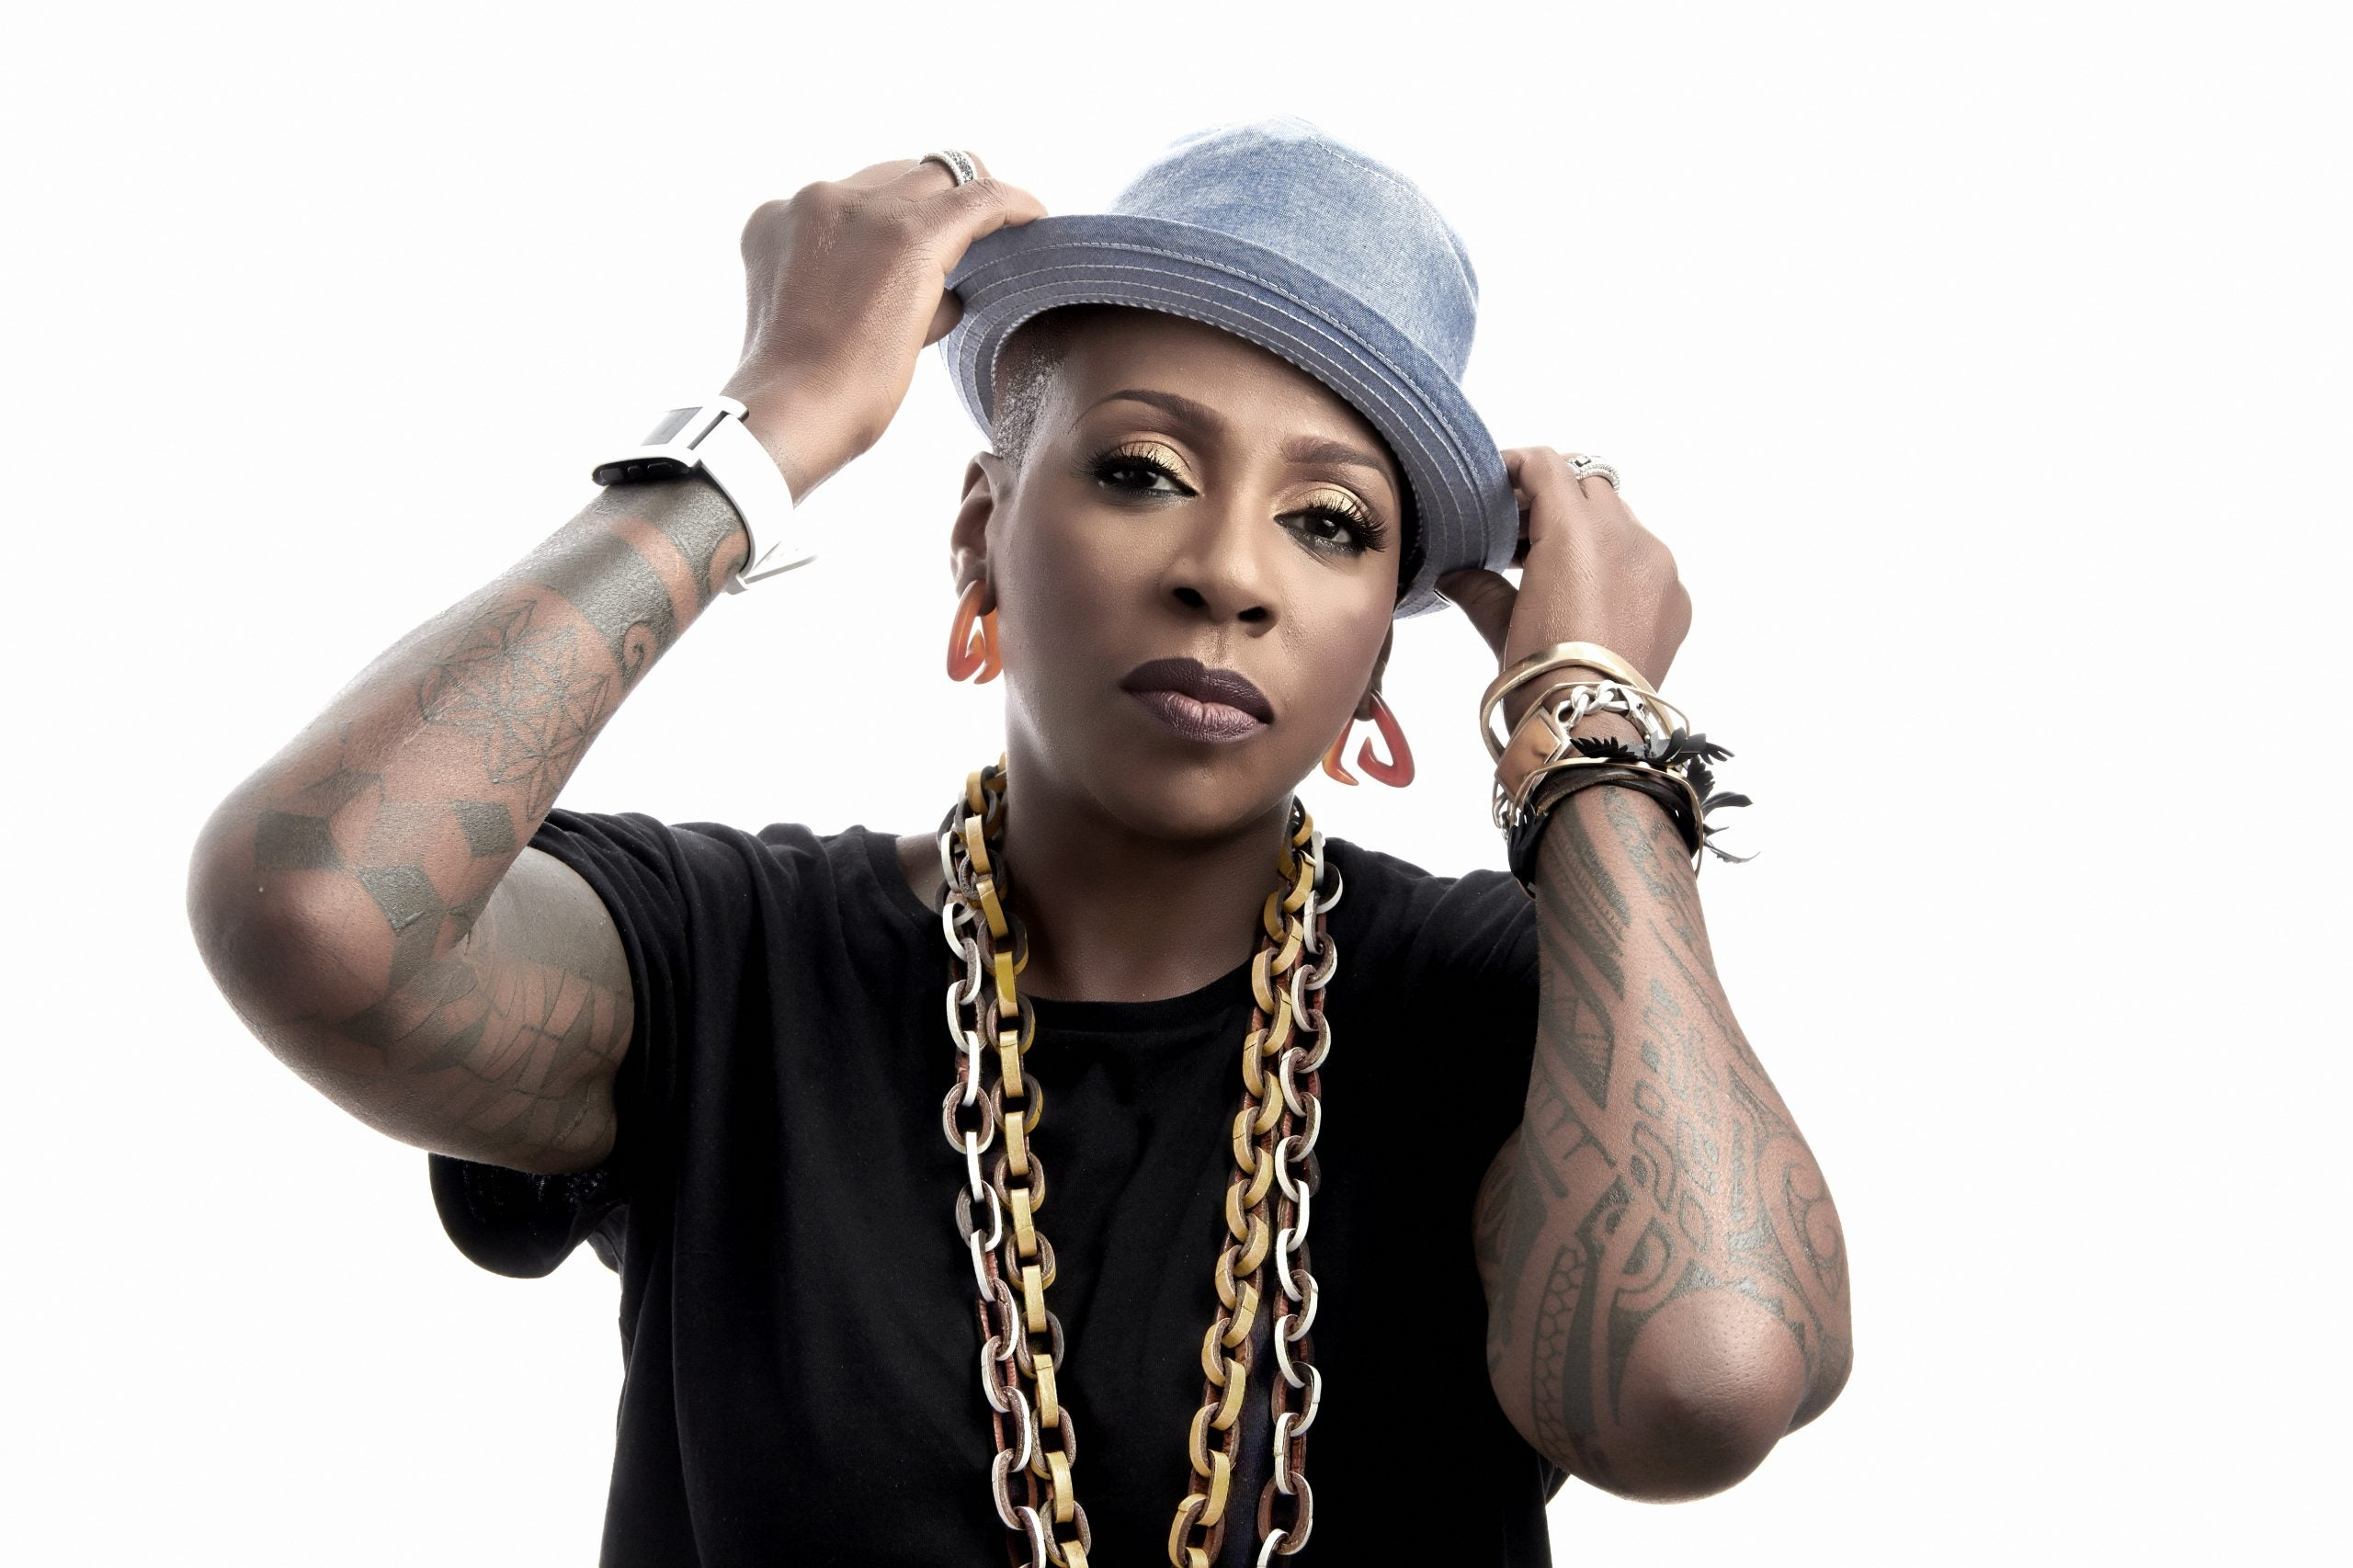 'Bob Hearts Abishola' Co-Creator Gina Yashere Sets the Record Straight About the Show